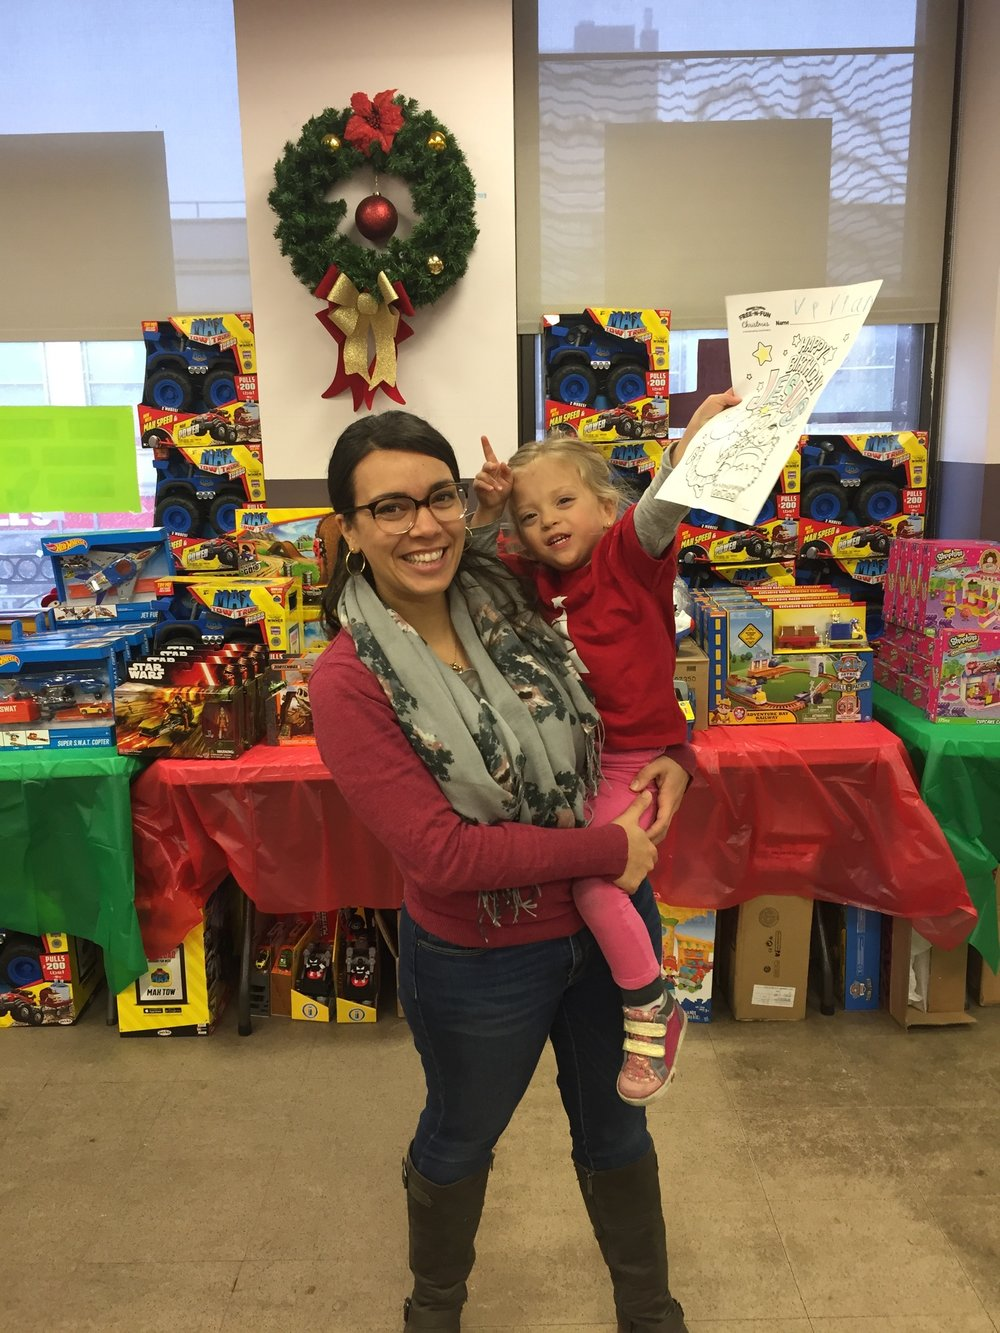 Mommy and Lucie volunteering at His Toy Store in Harlem with our church